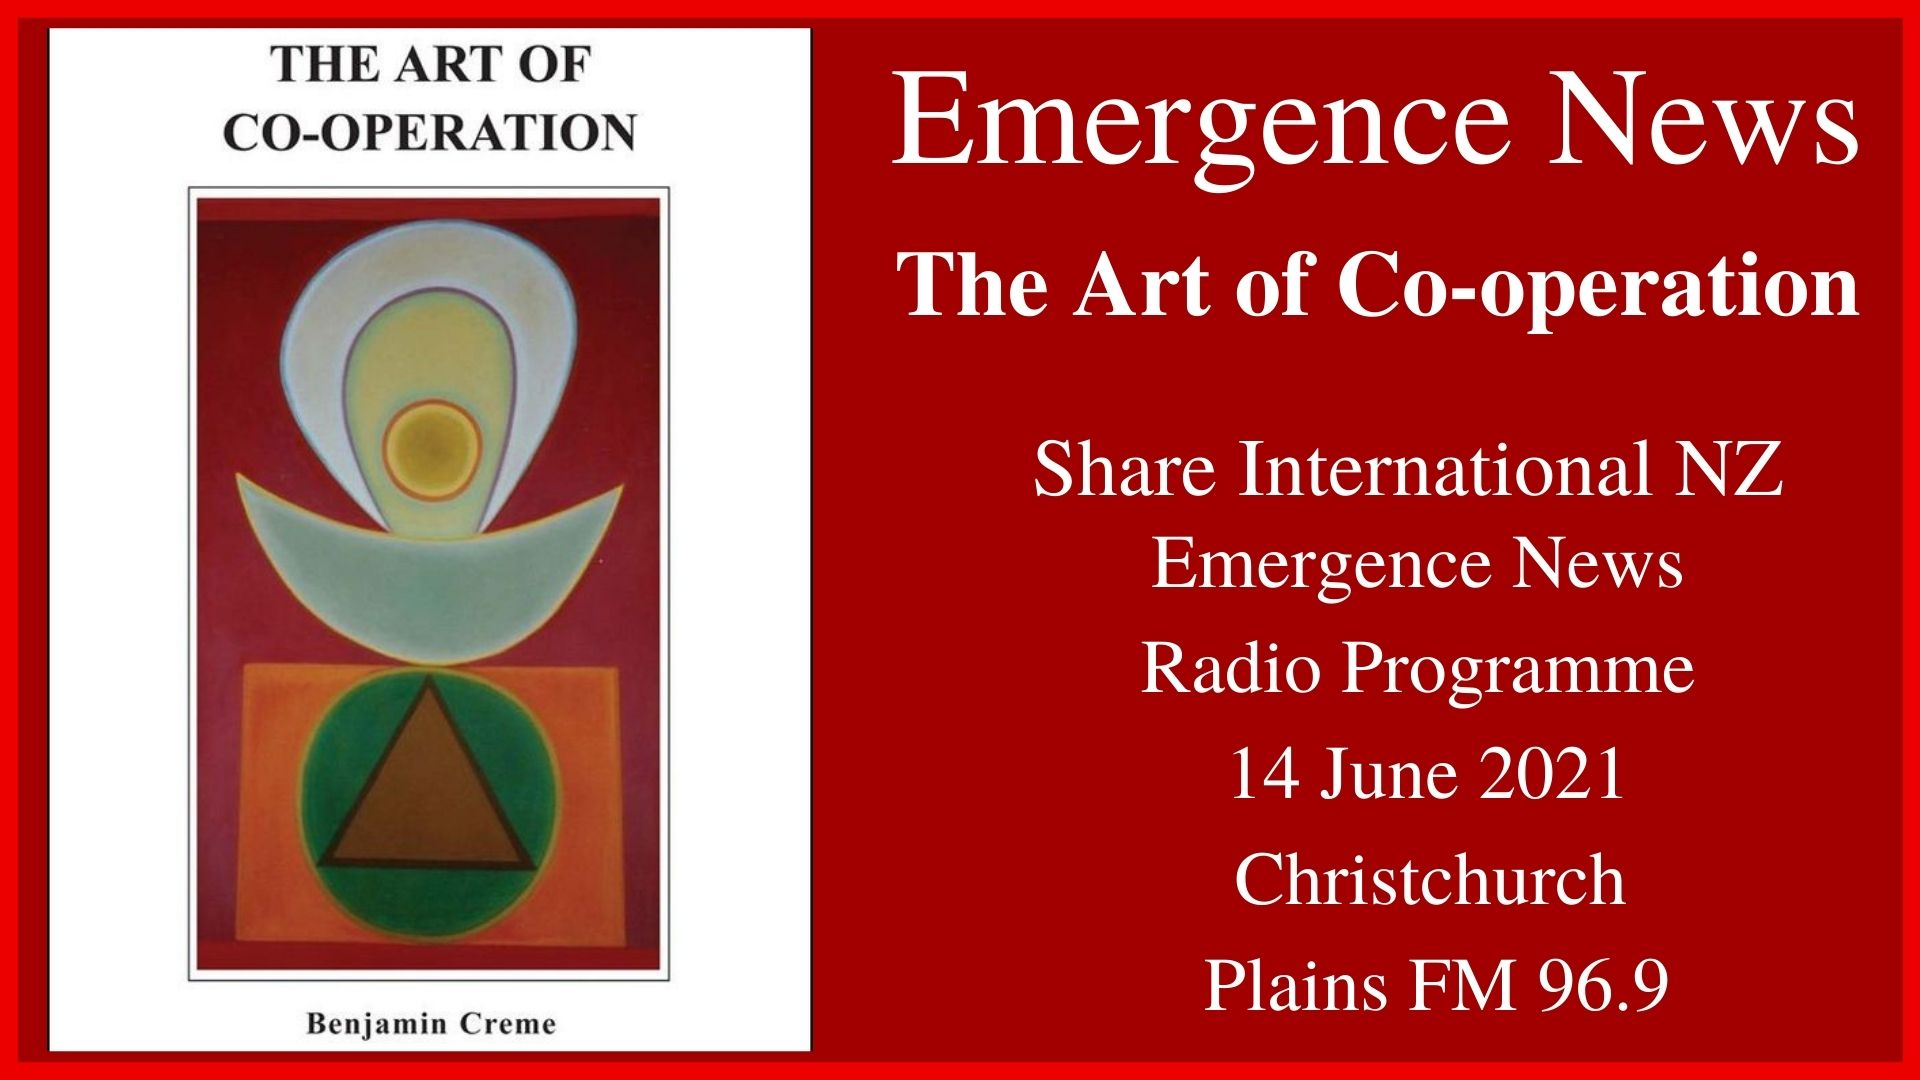 53) The Art of Co-operation